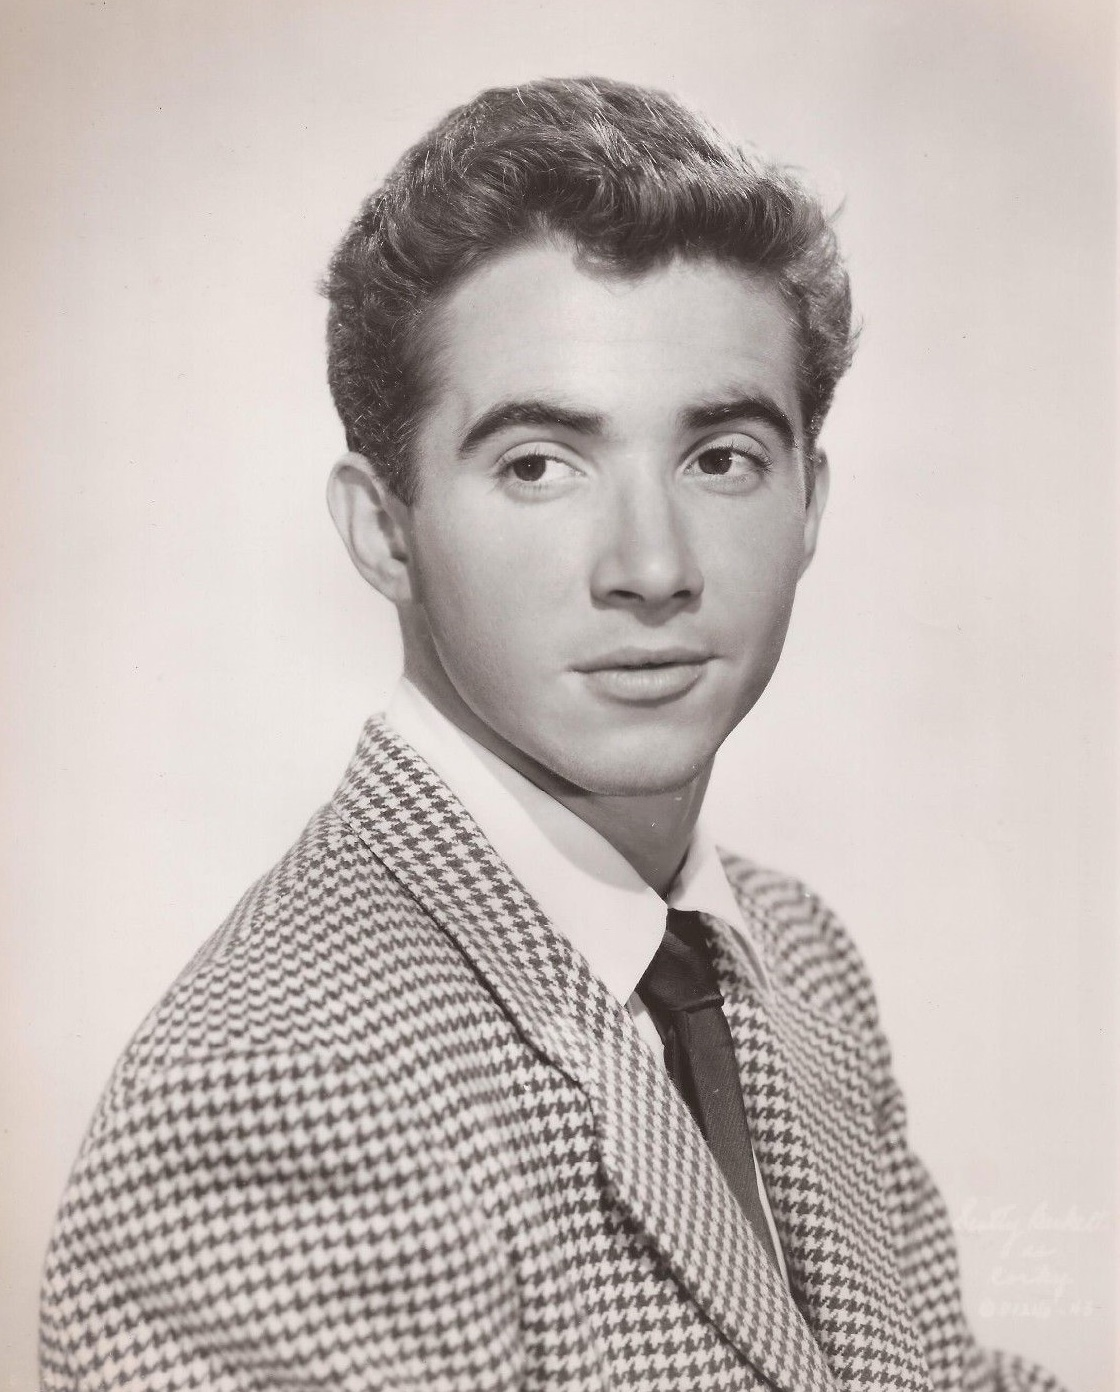 Scotty Beckett From Our Gang lived Post Gang after the Show ended, and was found dead in 1968 at age 38!